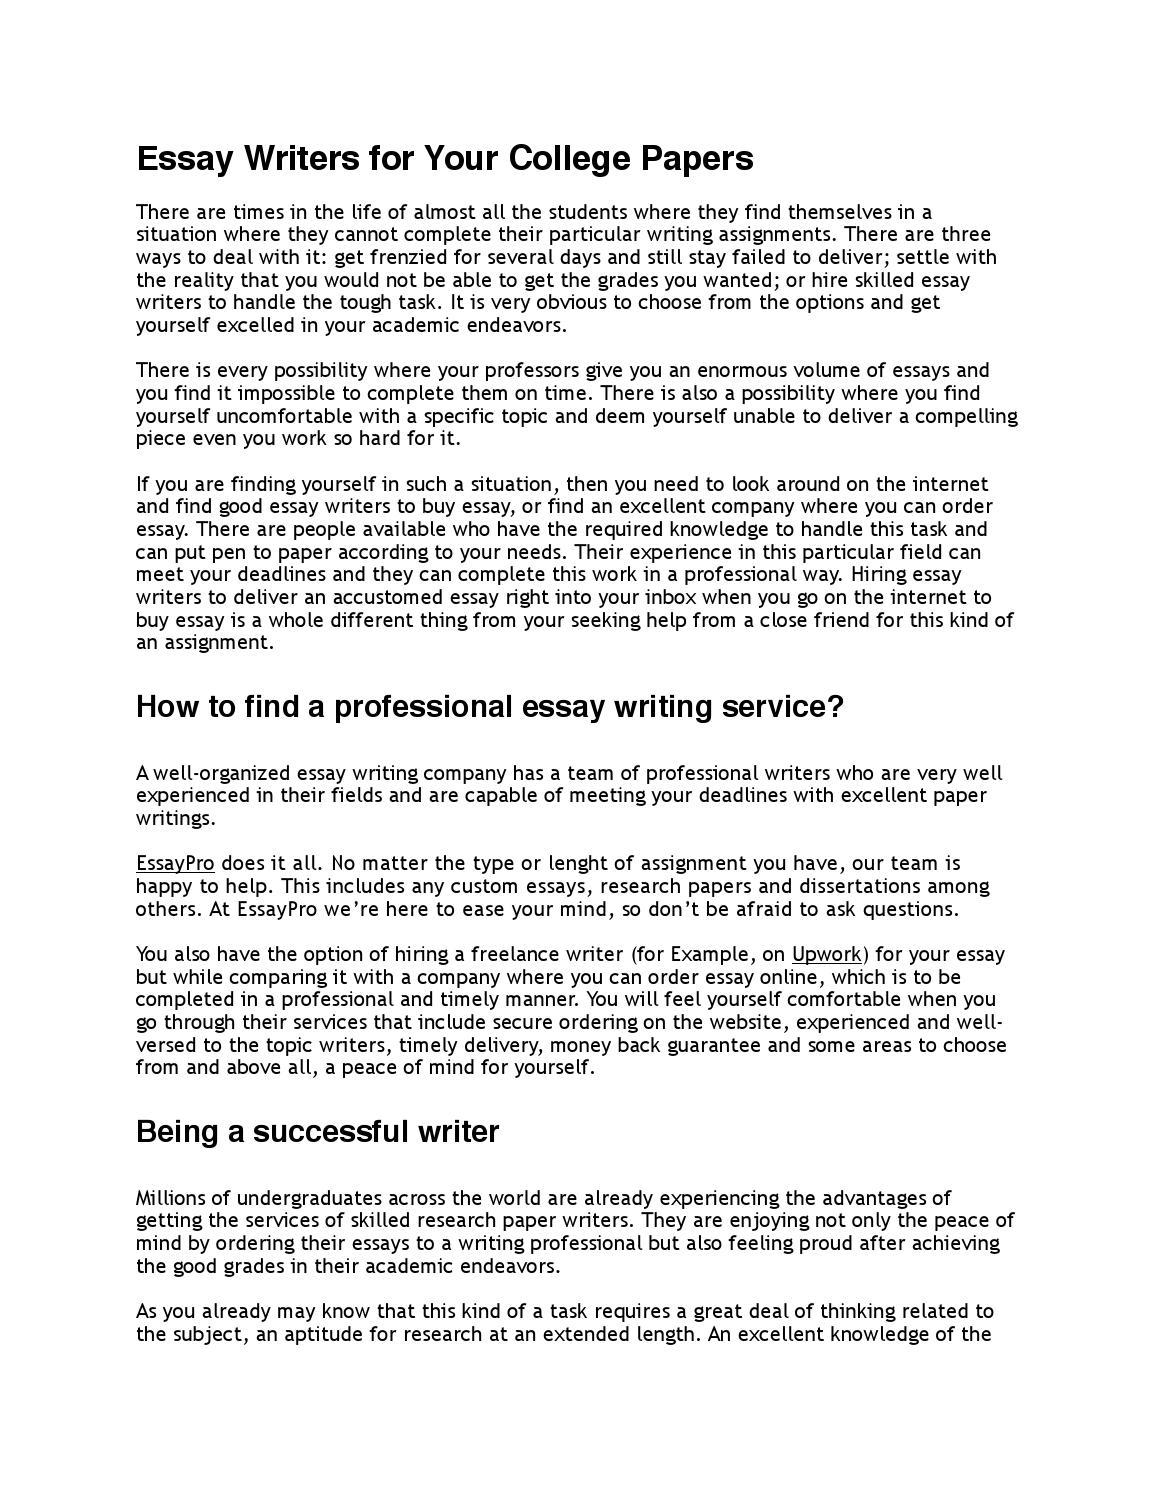 006 Who Are You Essay Page 1fit11562c1496ssl1 Rare Motivates Inspires Examples College Full